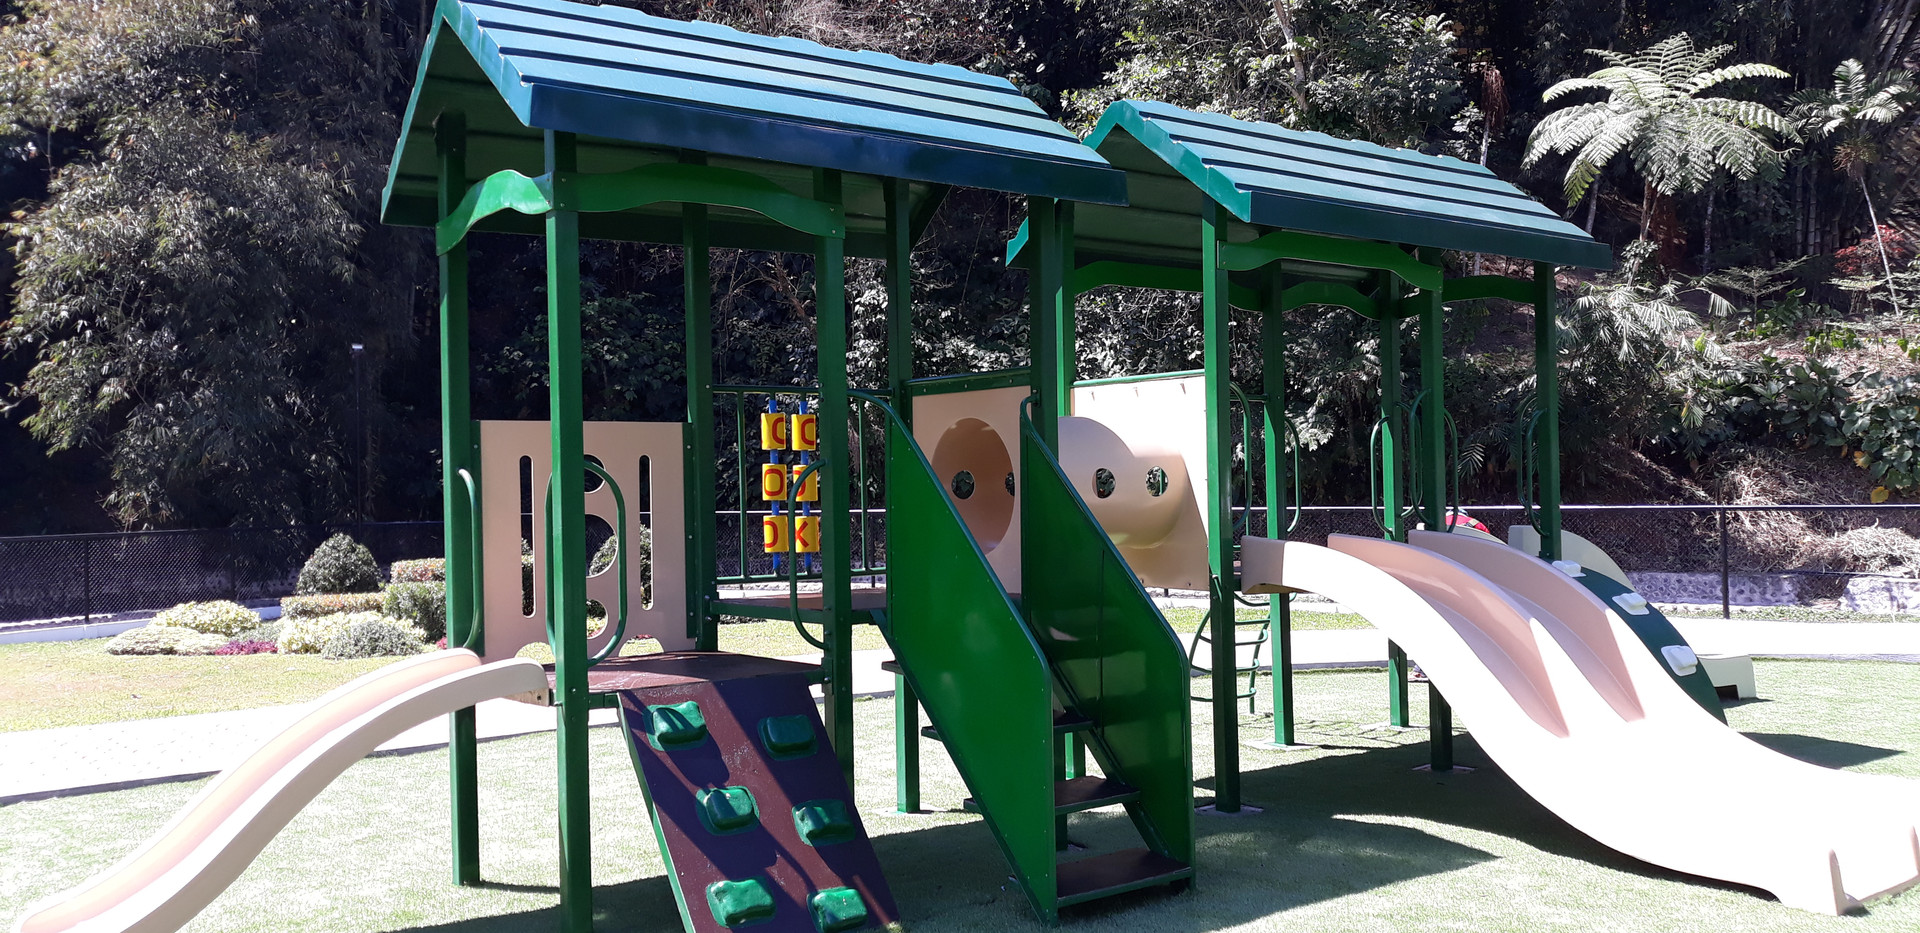 Play Equipment # 14  - Long Wave Slide - Big Twin Slide - Day Care Slide - Rock Climber - Crawl Tube - Roofing - Stair with panel - Design Panel  Lot Area: L-9 x W-4.5 Meter Suitable for age 3 to 7 yrs old